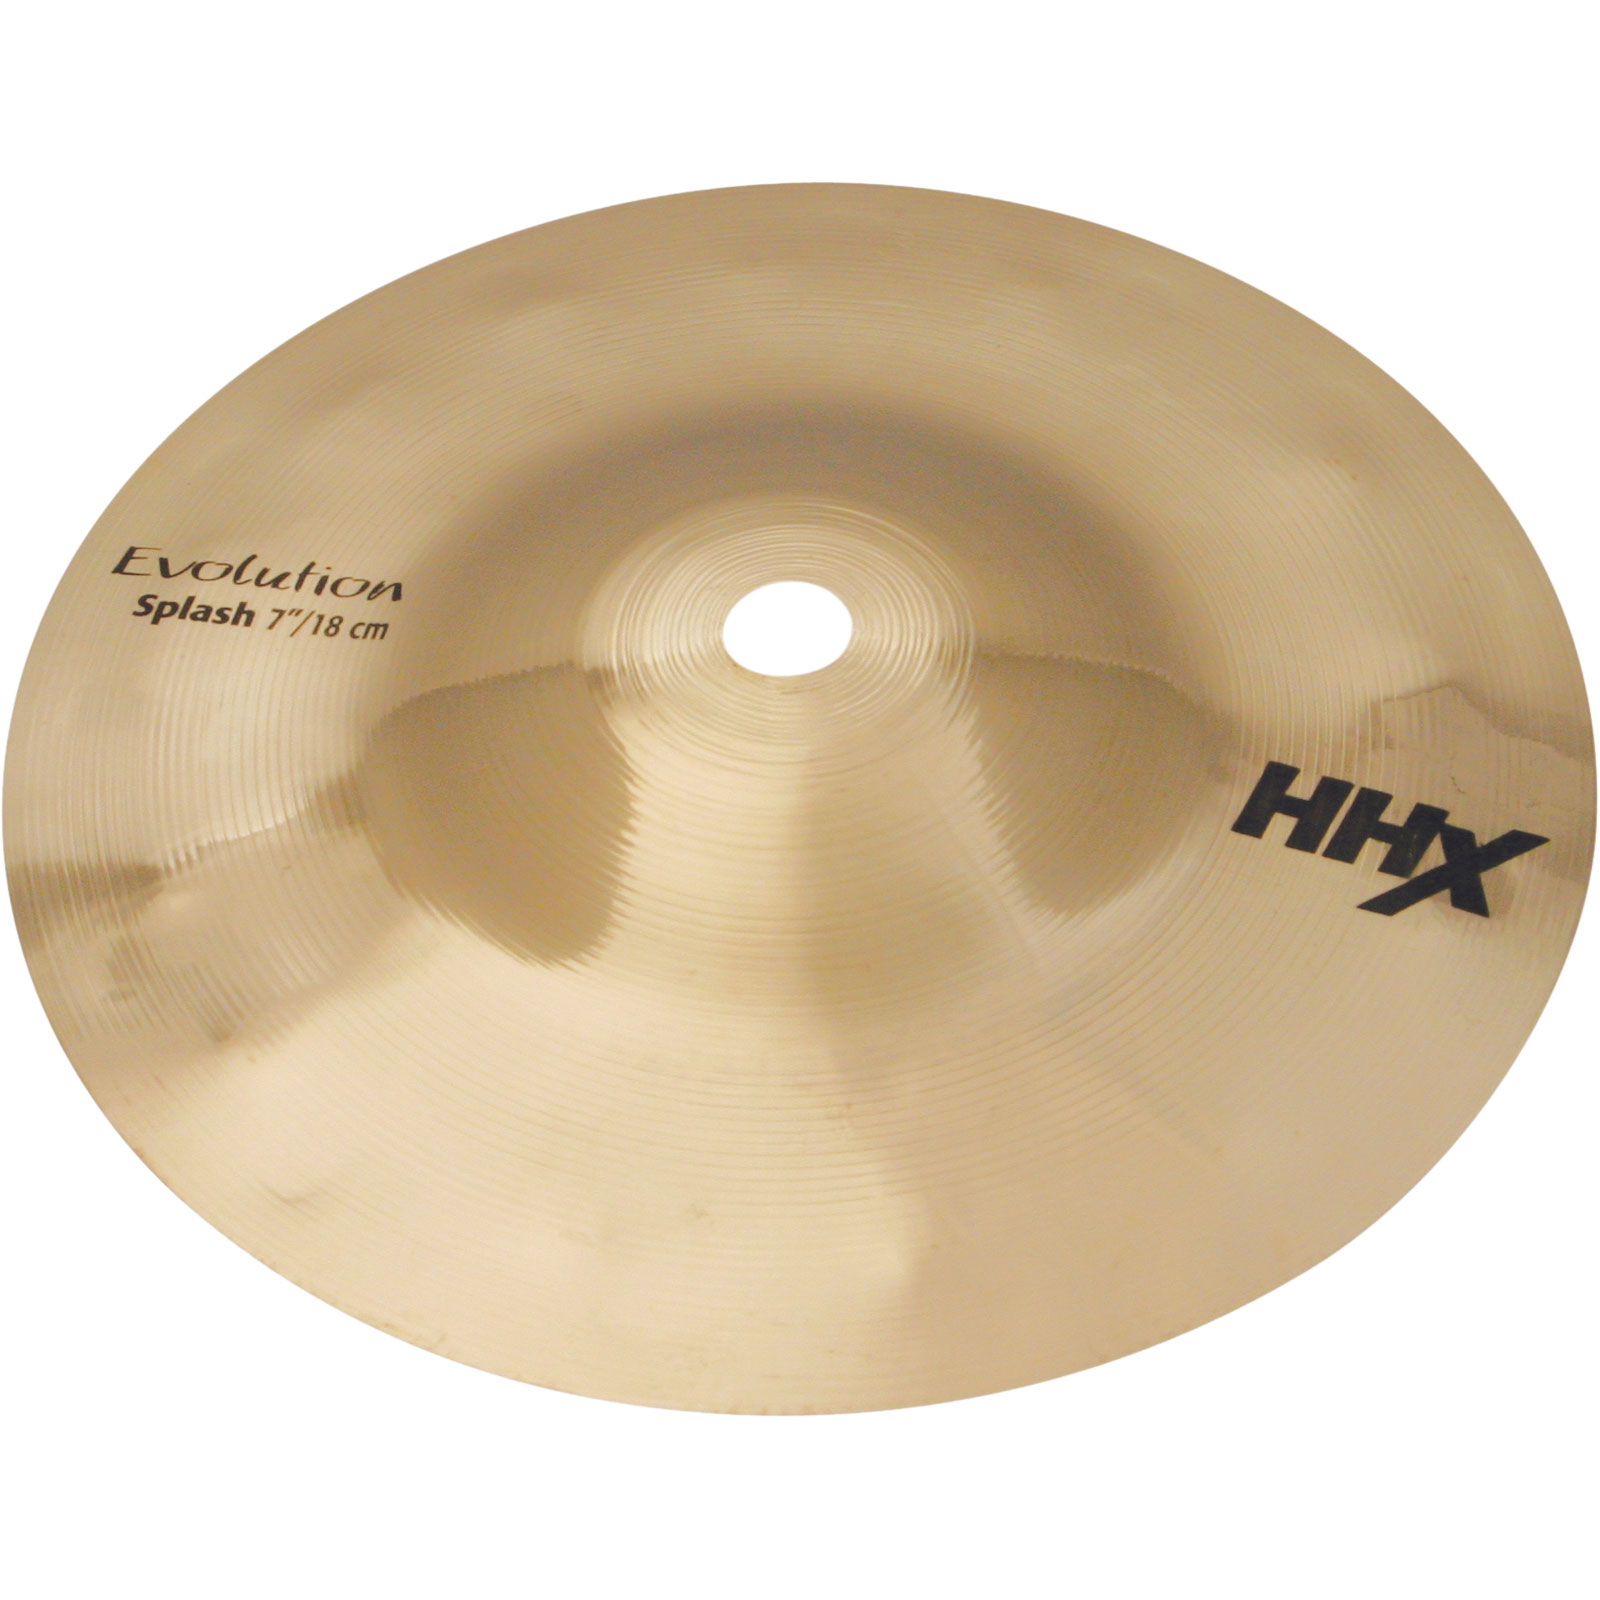 "Sabian 7"" HHX Evolution Splash Cymbal with Brilliant Finish"